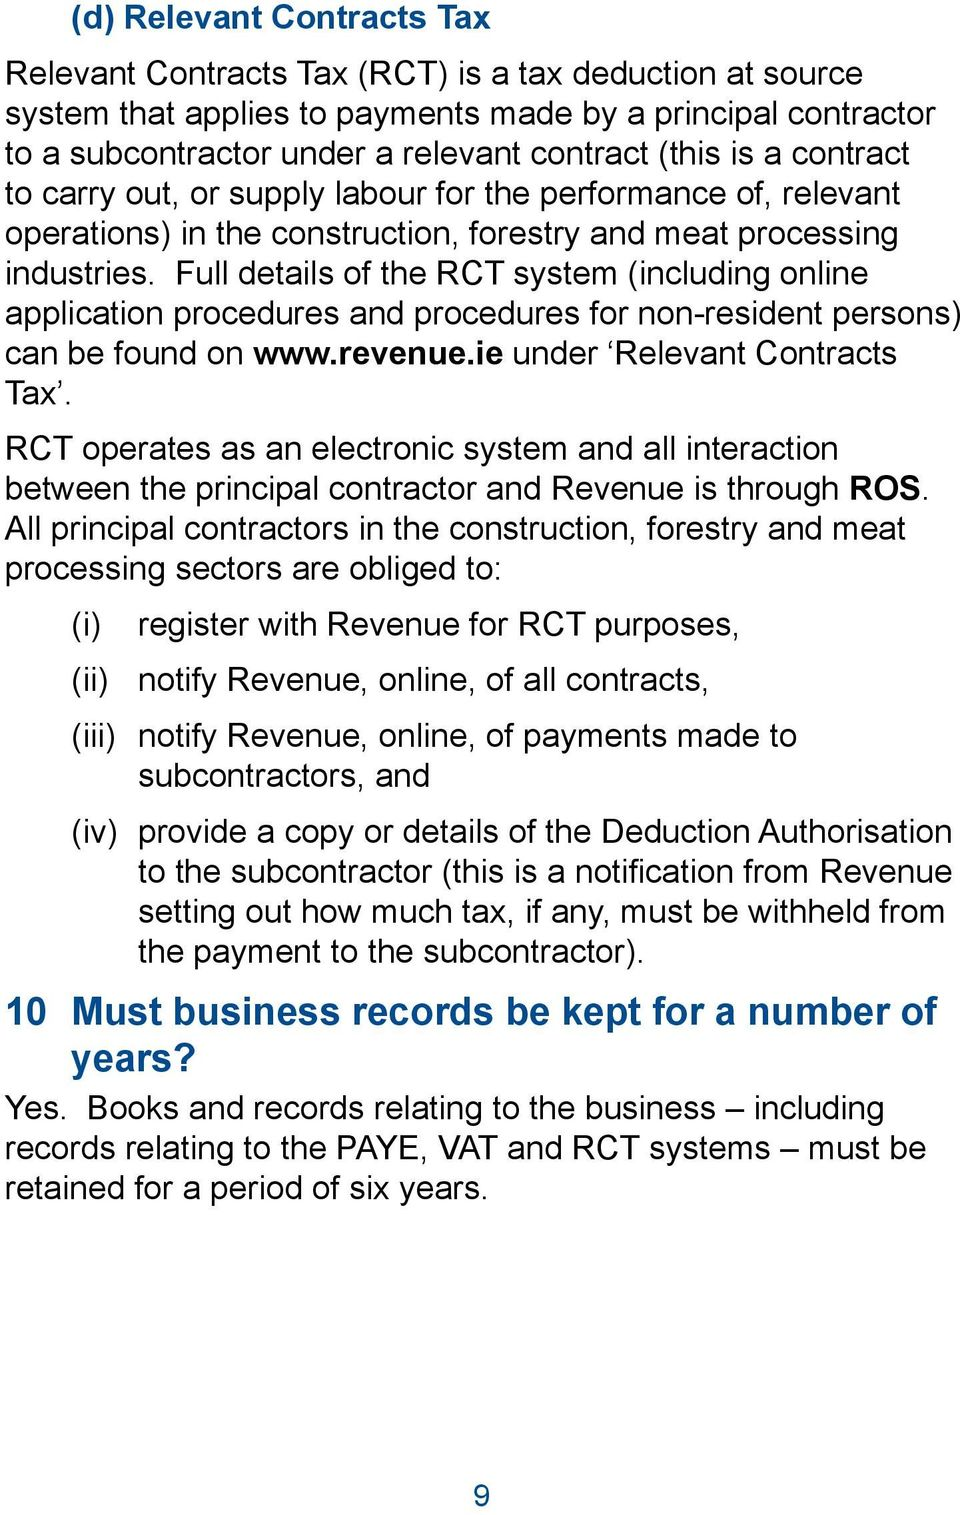 Full details of the RCT system (including online application procedures and procedures for non-resident persons) can be found on www.revenue.ie under Relevant Contracts Tax.